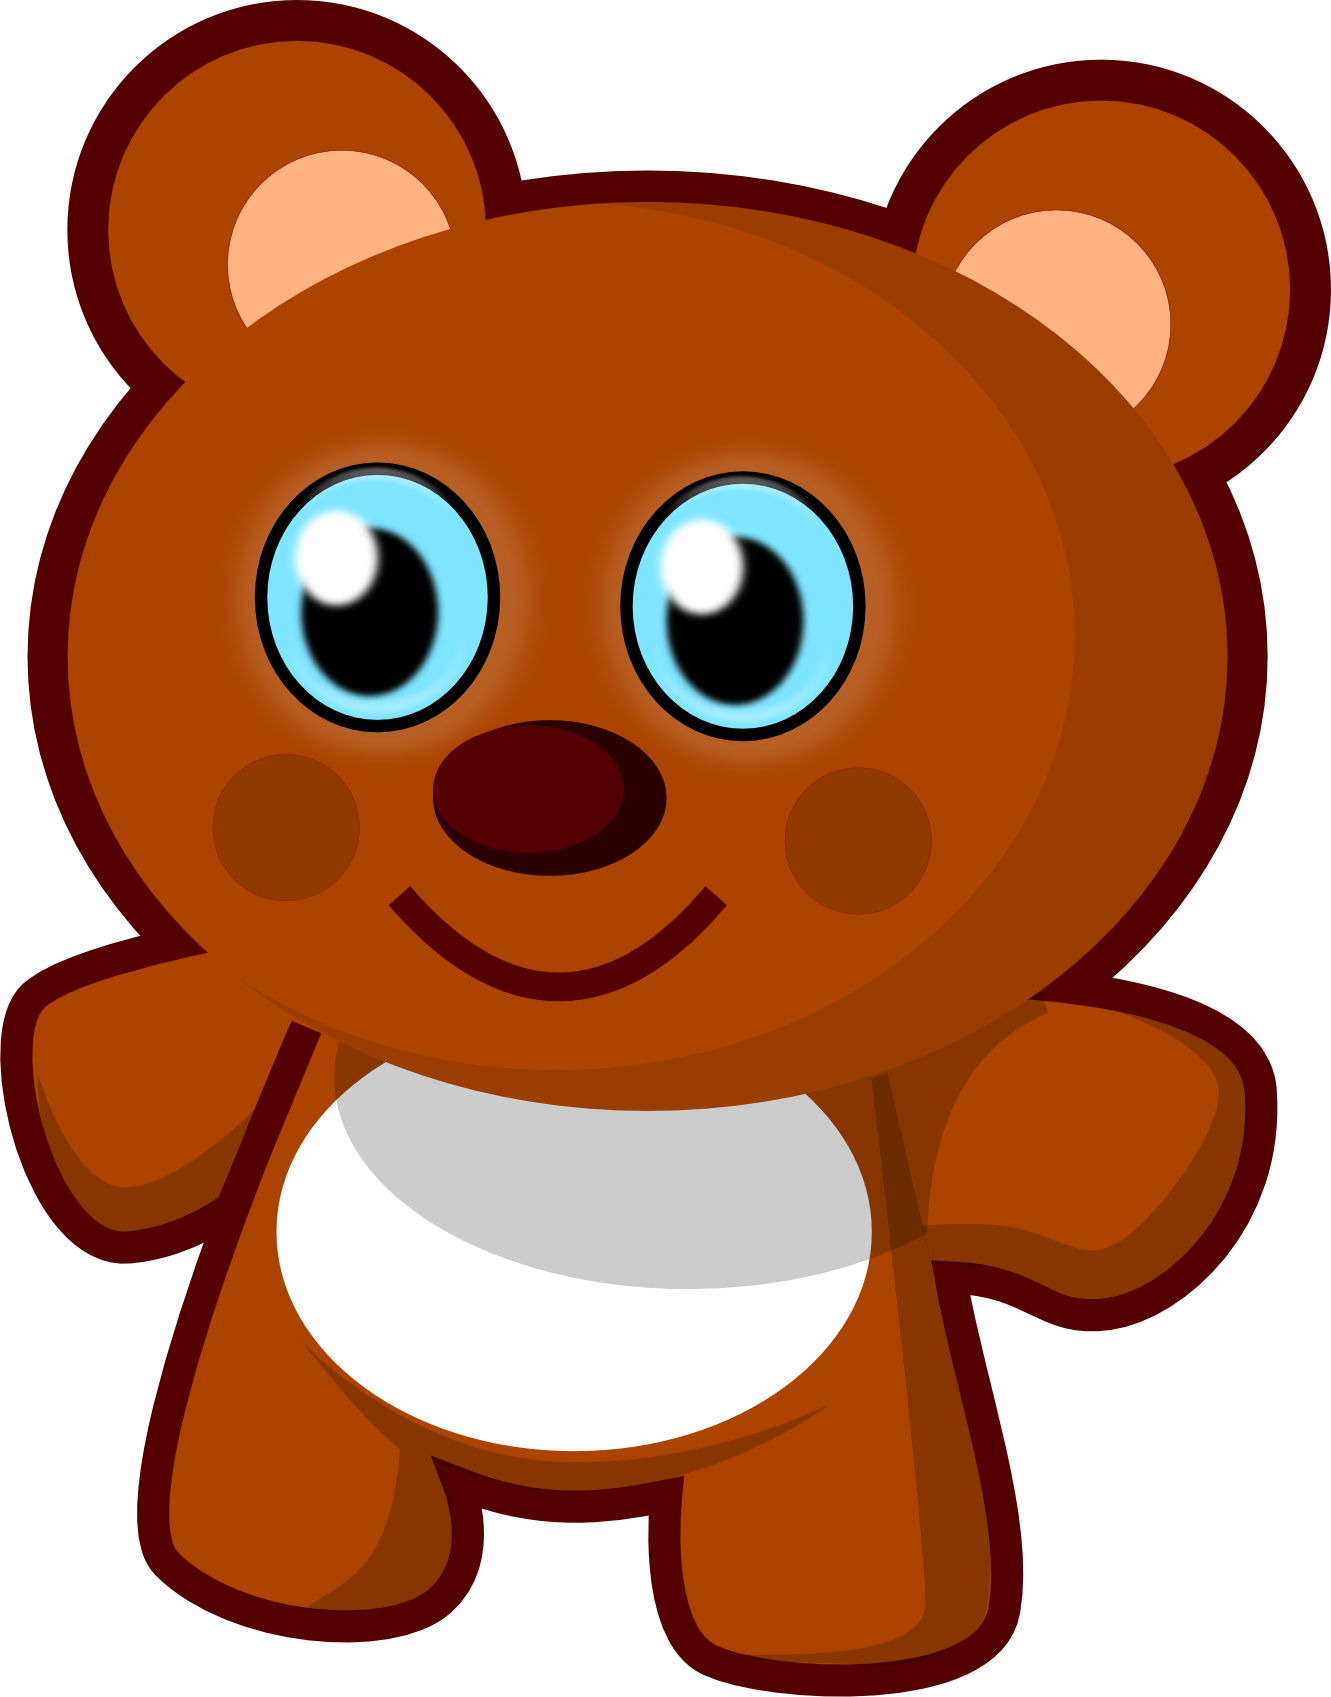 clipart free Angry bear clipart. At getdrawings com free